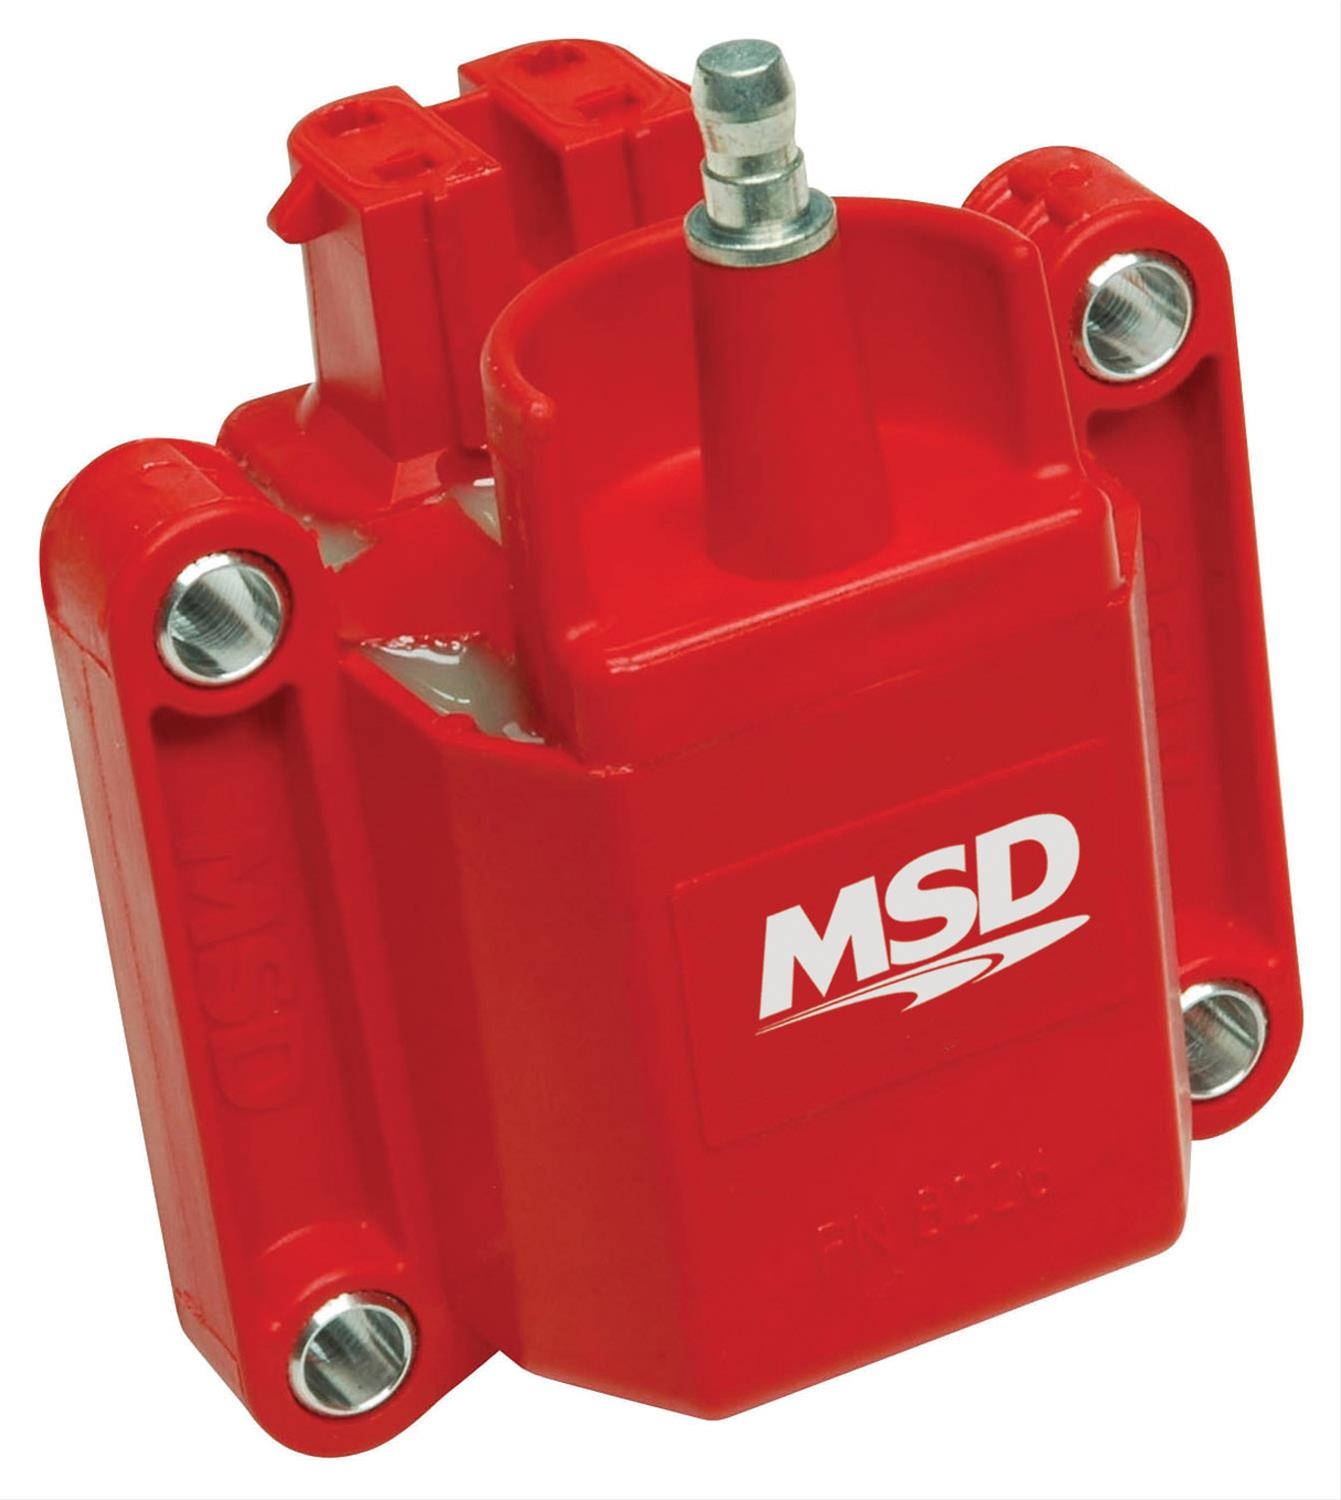 hight resolution of msd blaster gm coils 8226 free shipping on orders over 99 at summit racing